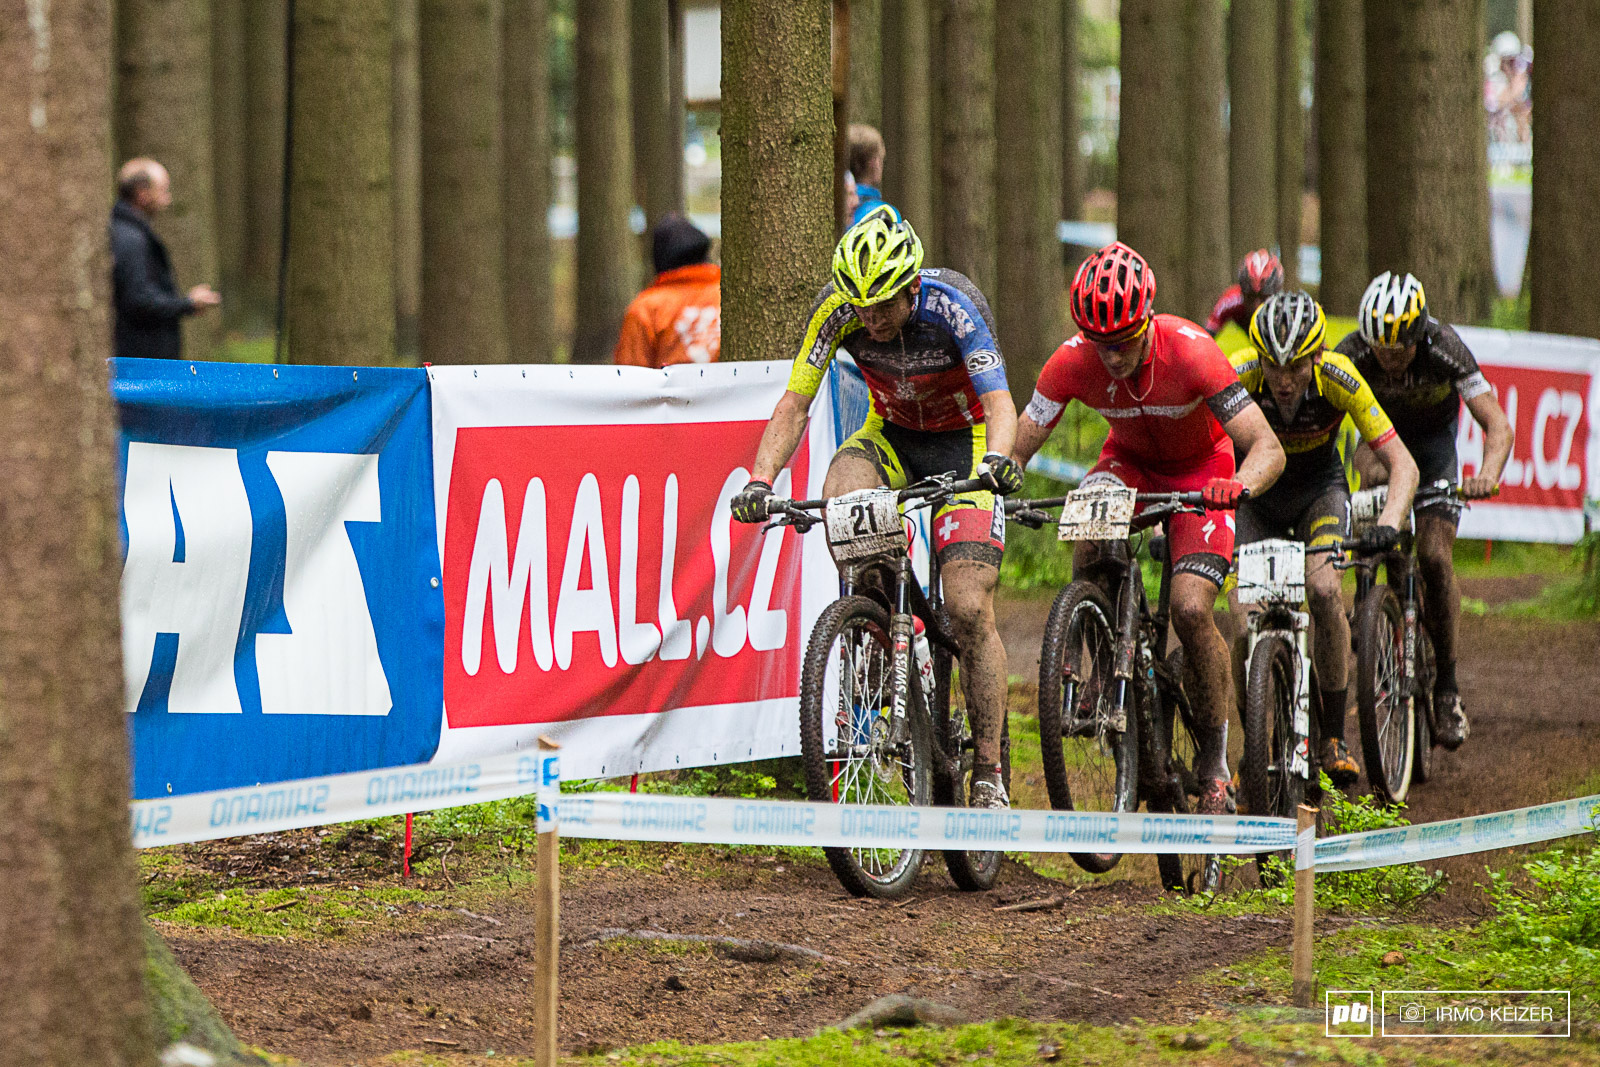 The men s U23 race was a close battle with Forster leading and Gaze Ferguson and Frischknecht right on his back.